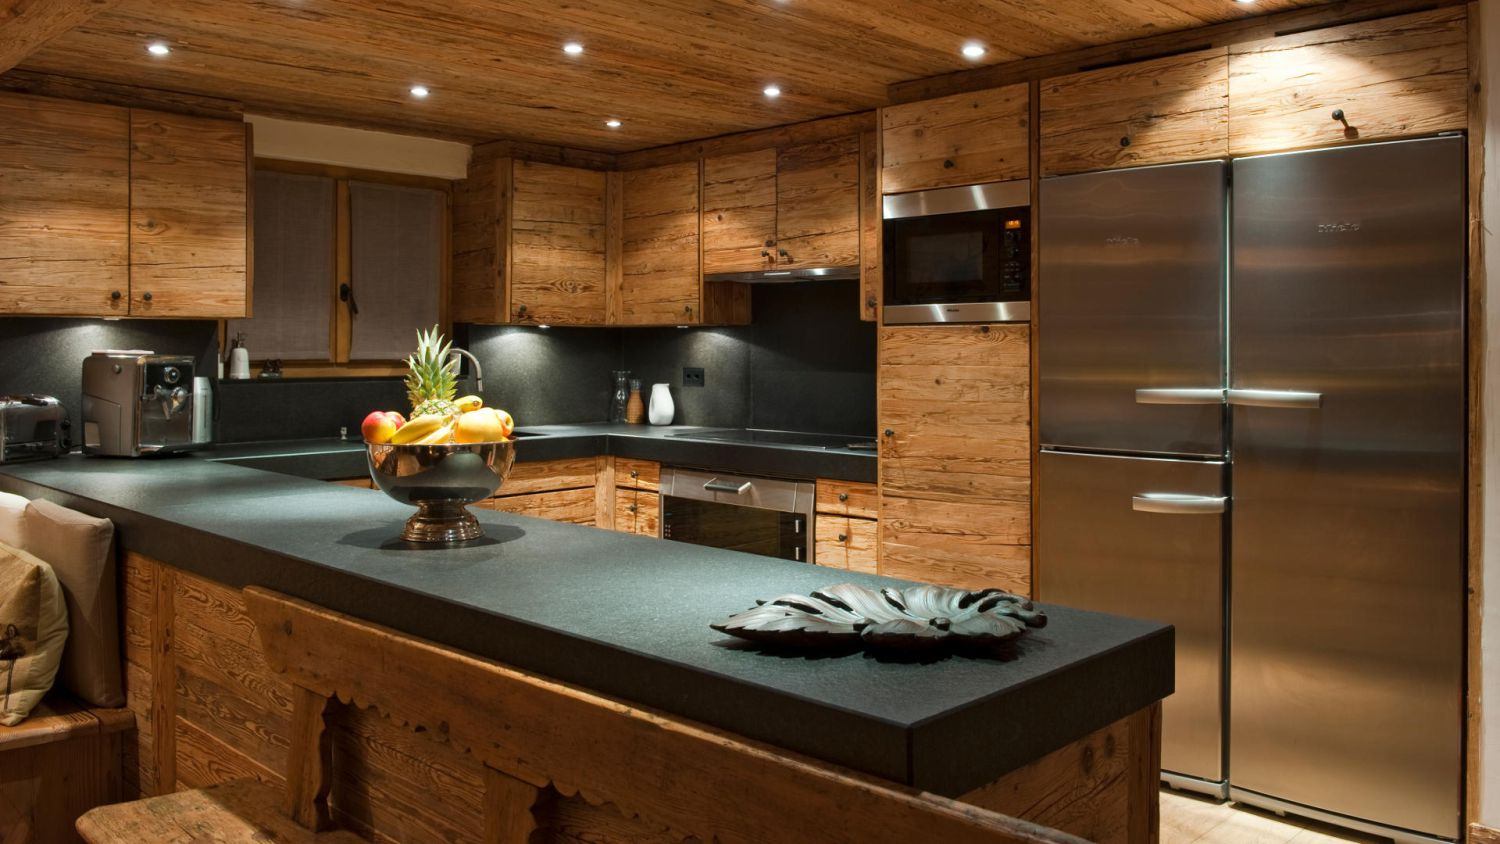 chalet-silver-kitchen-3